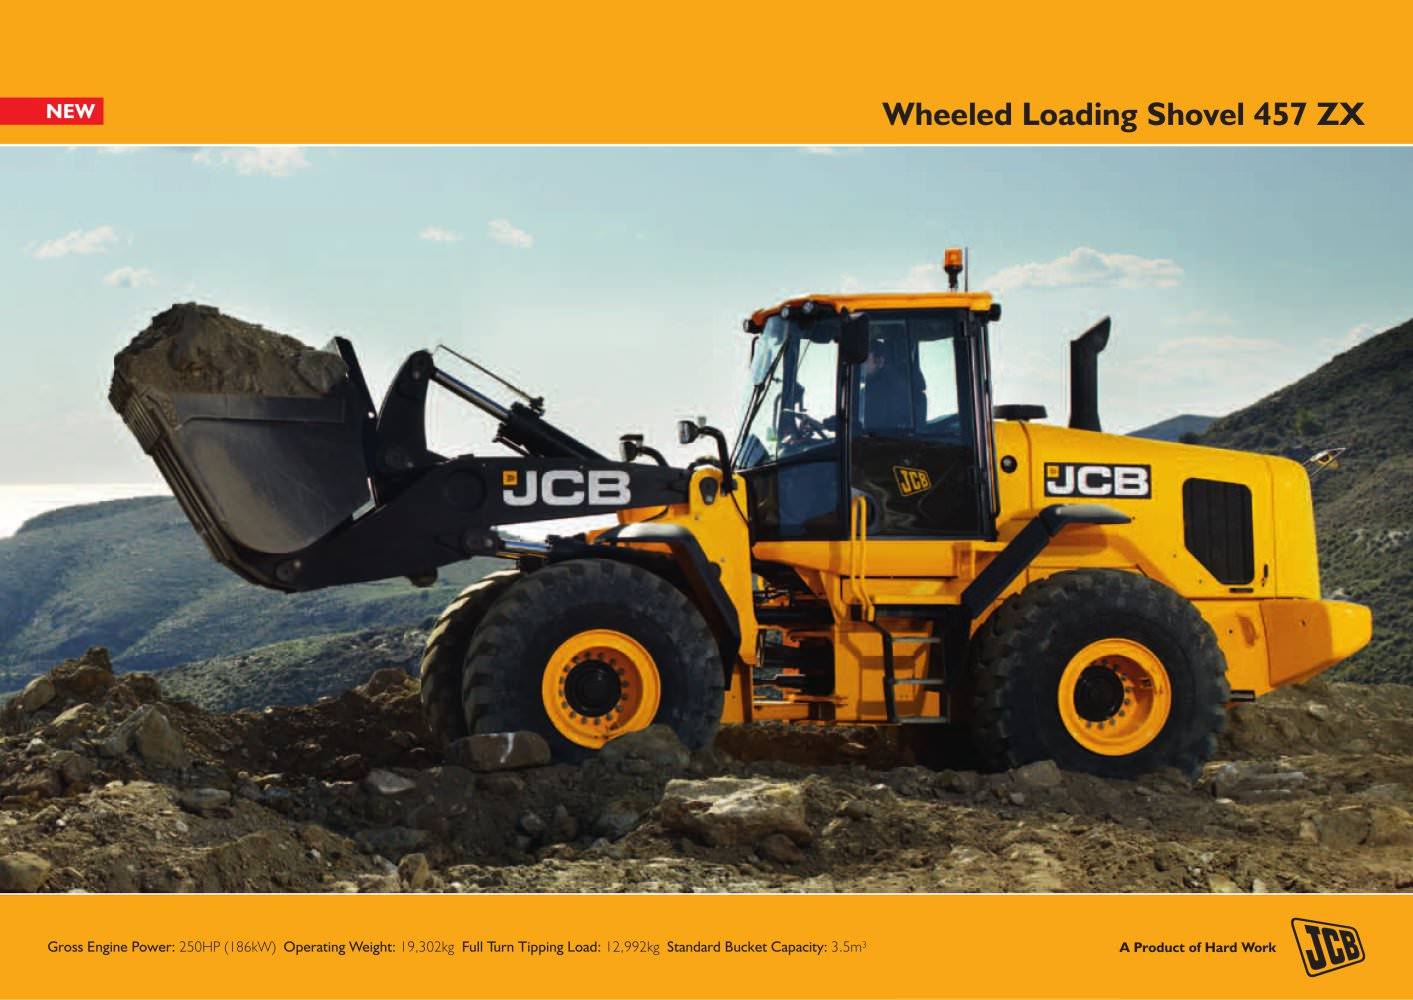 Wheeled Loading Shovel 457 ZX - 1 / 12 Pages